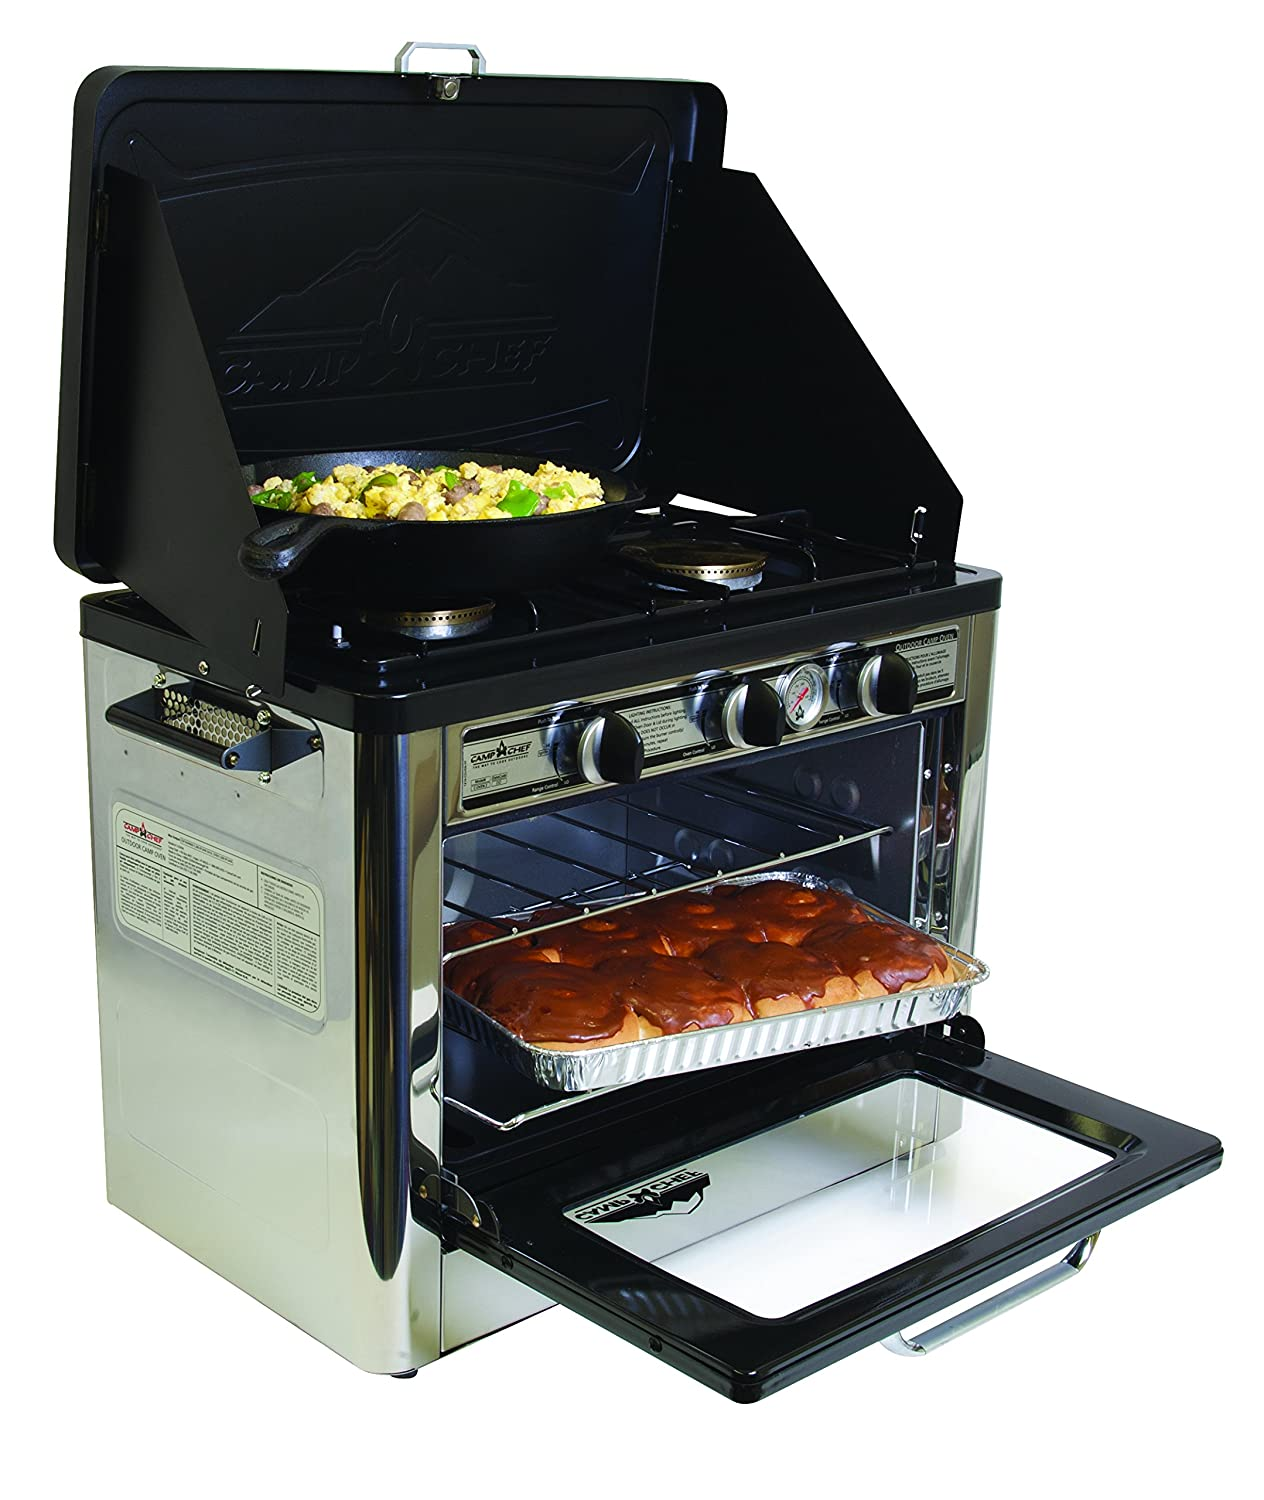 BBQ Kitchen Range Electric Oven Stove 2-Burner Propane Gas